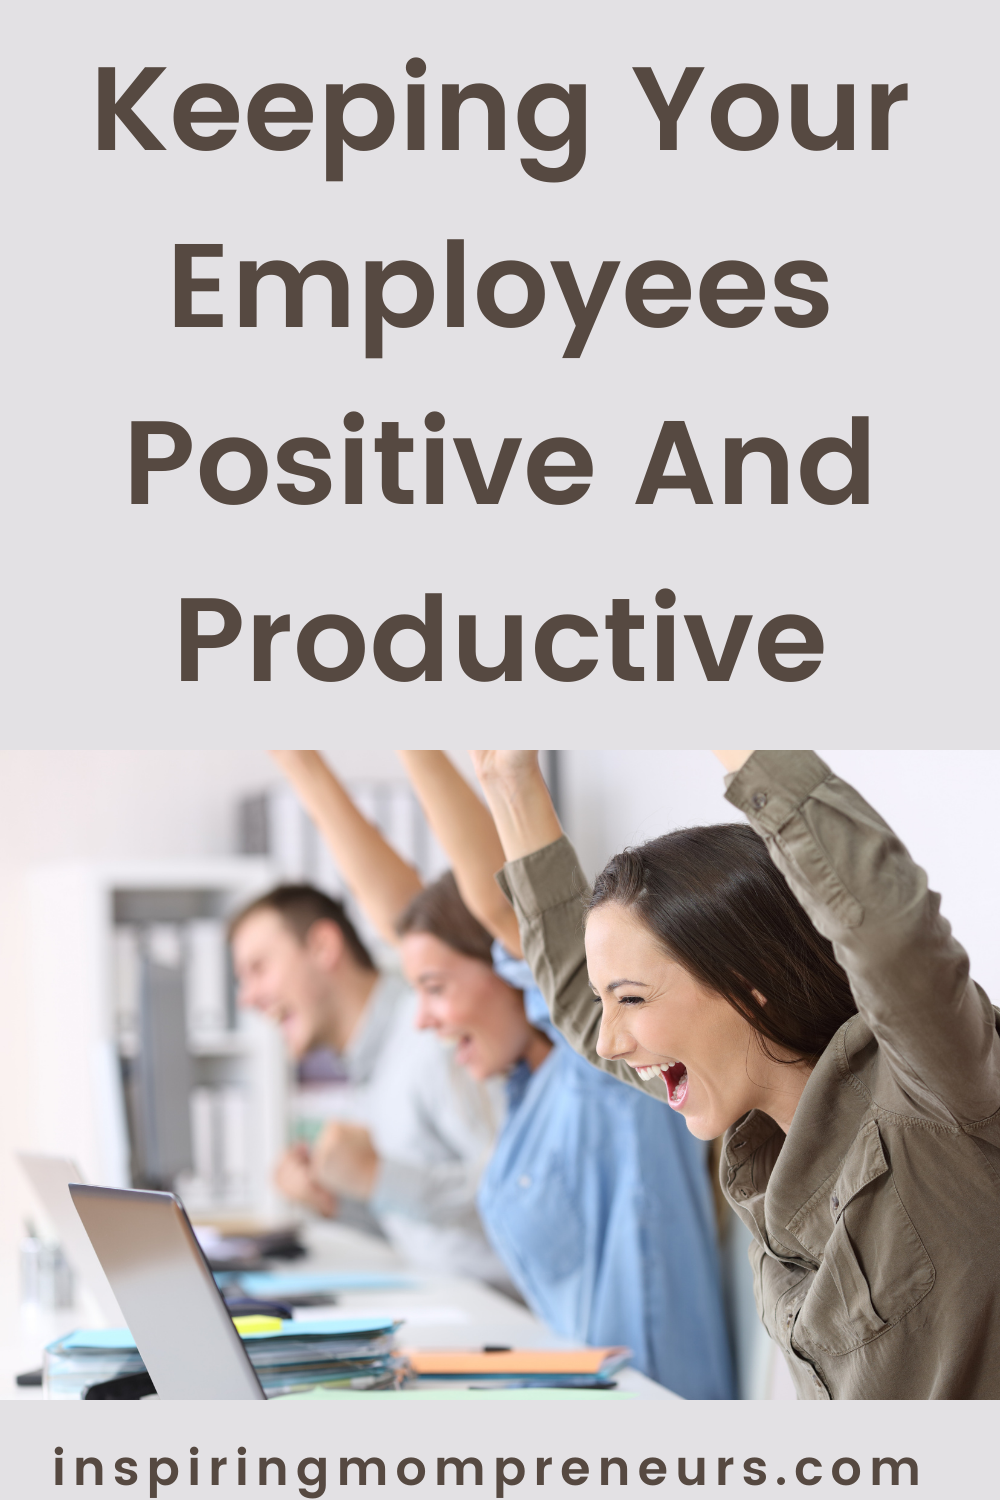 Keeping employees positive and productive doesn't have to cost more money. These twelve ideas will help you keep your staff happy without raising salaries.